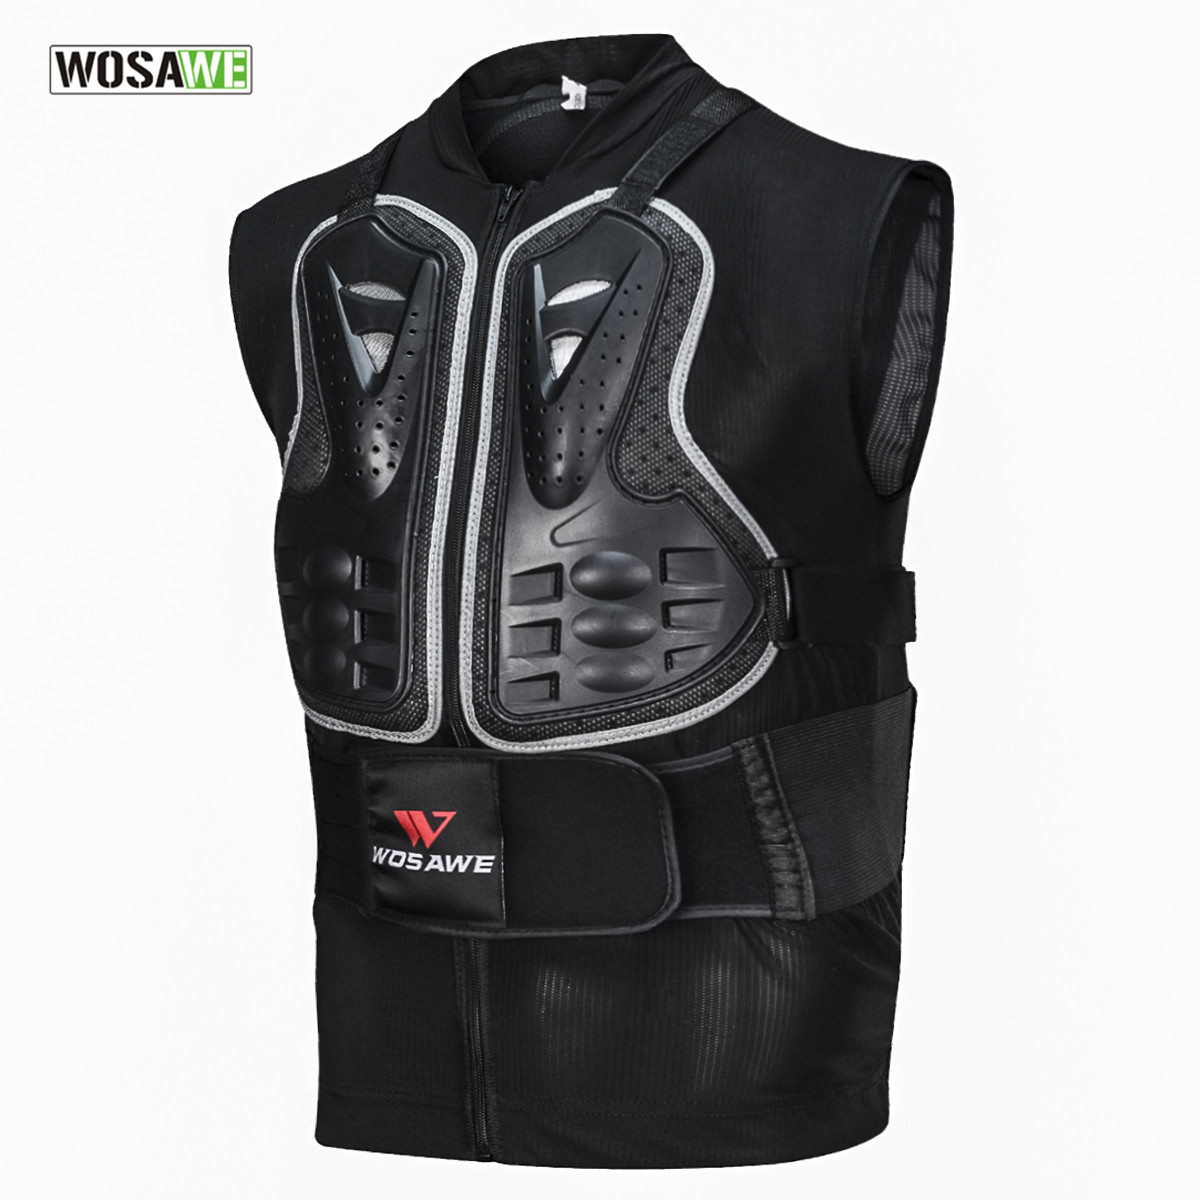 WOSAWE Sleeveless Body Armor Protective Vest Motorcycle Protect Armor Vest Motocross Cycling Equipment Cool Mesh Body ProtectiveWOSAWE Sleeveless Body Armor Protective Vest Motorcycle Protect Armor Vest Motocross Cycling Equipment Cool Mesh Body Protective